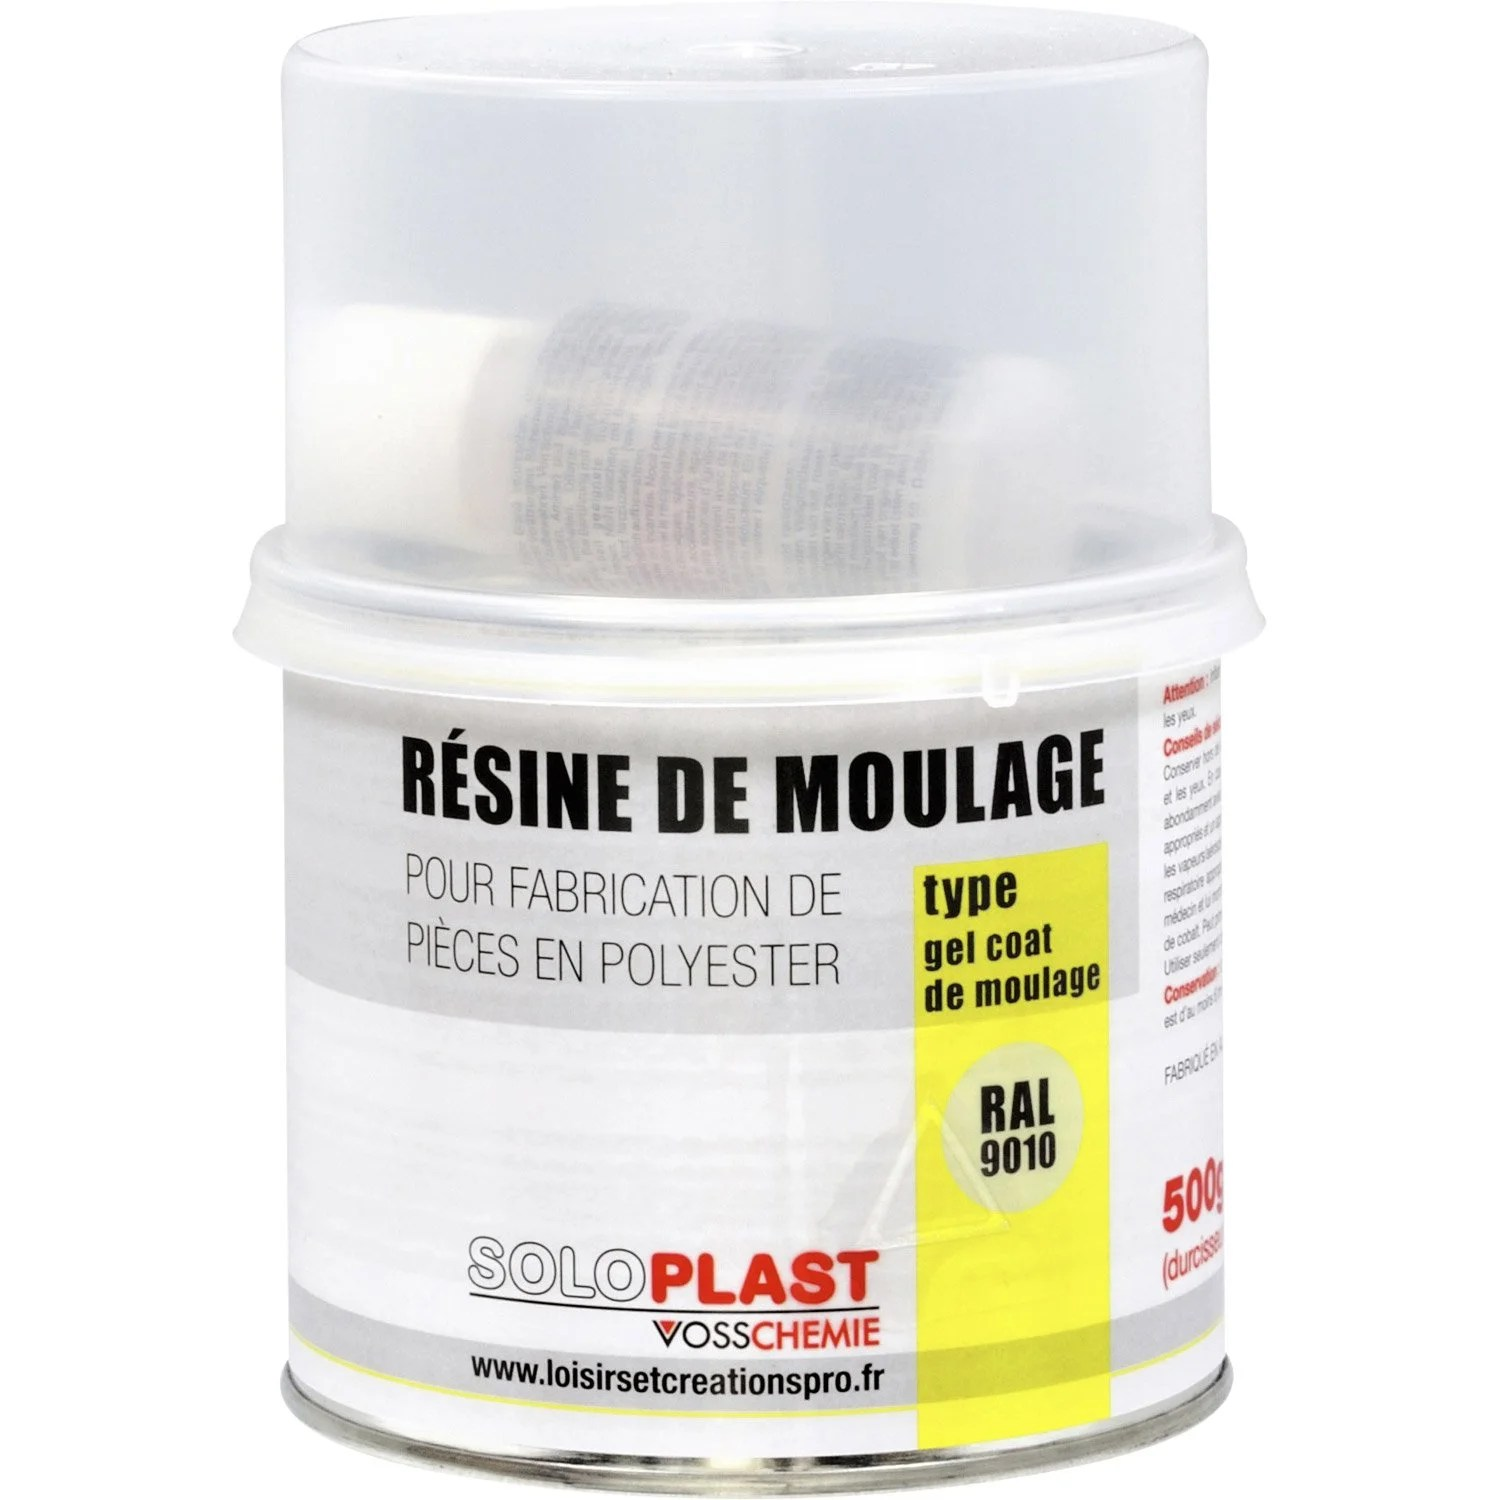 Gelcoat De Finition Leroy Merlin Résine Gel Coat Soloplast 500g Leroy Merlin